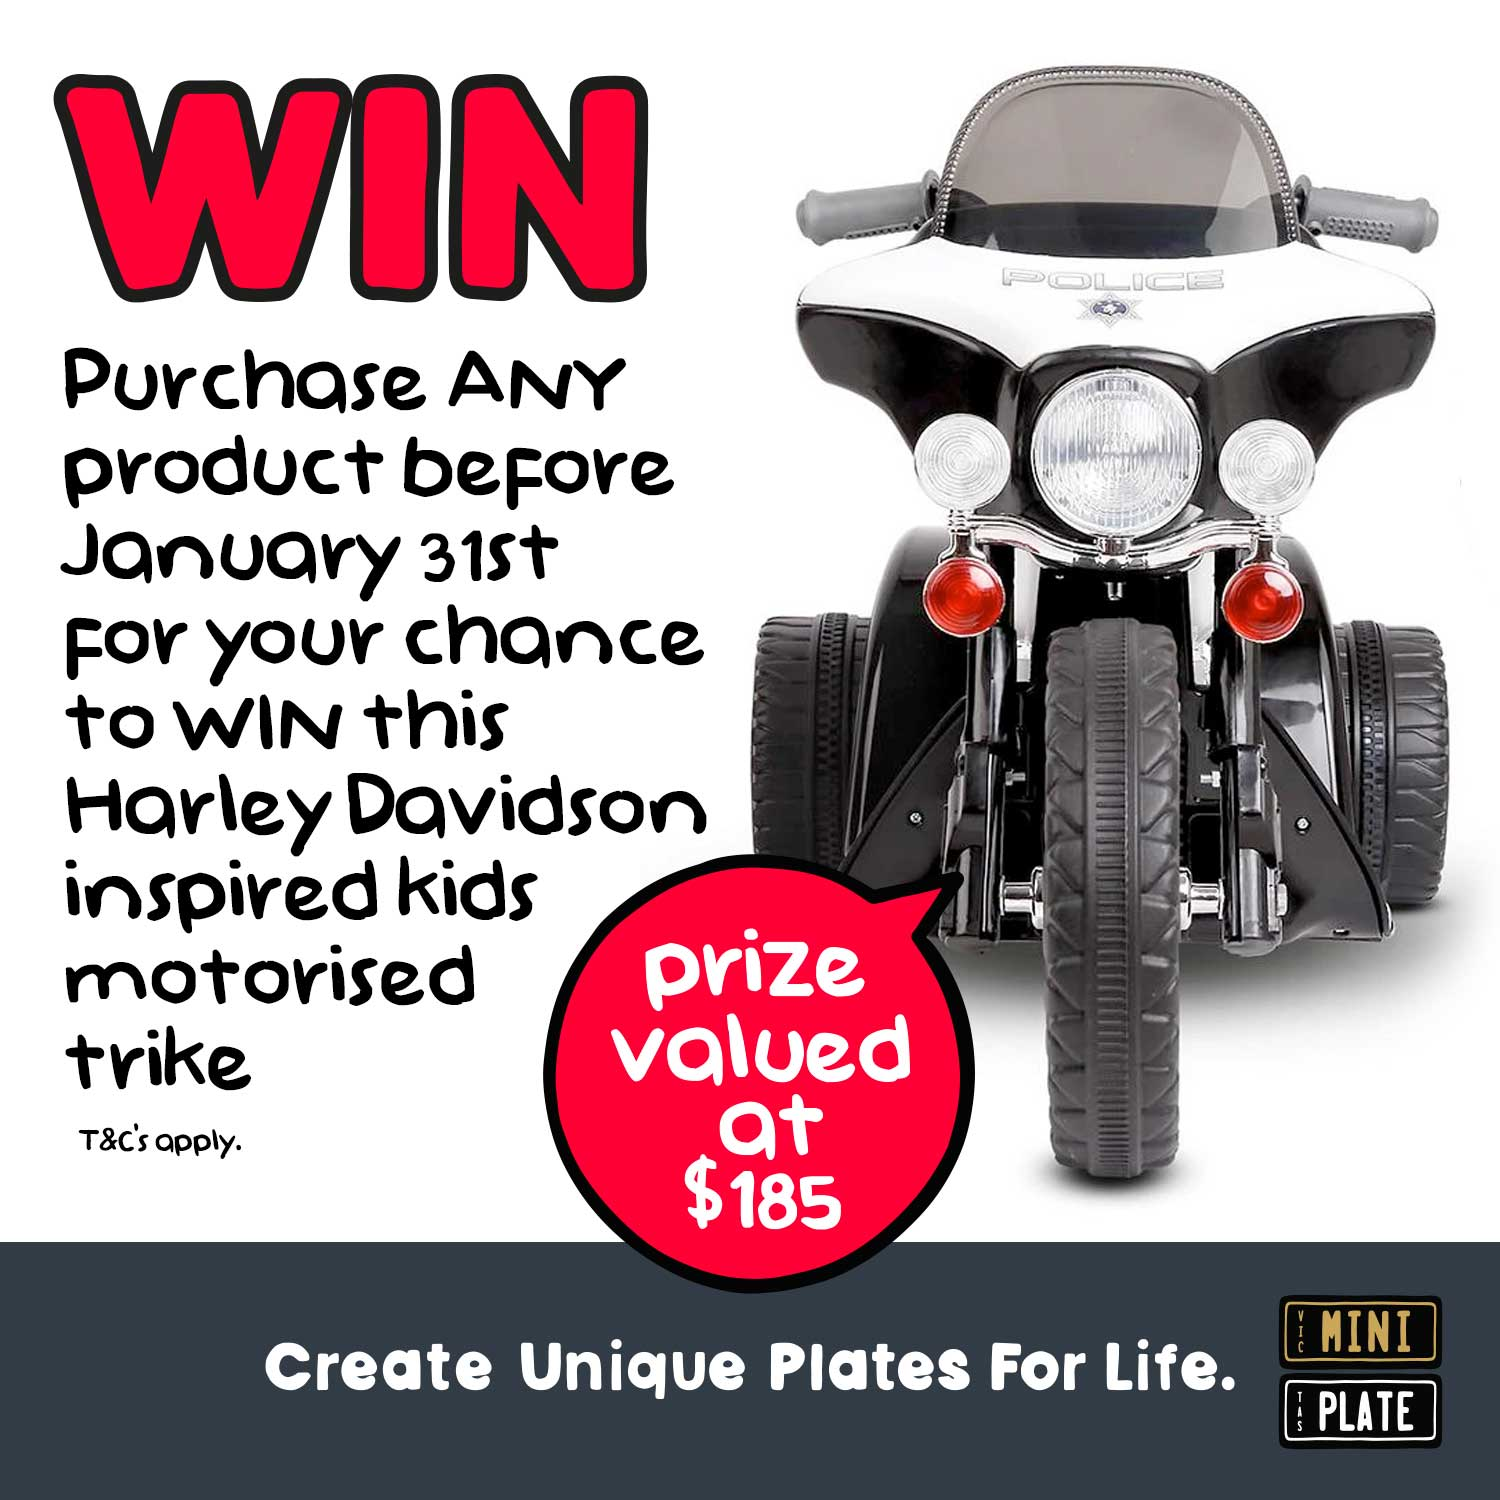 WIN A Harley Davidson inspired Kids Ride On Trike